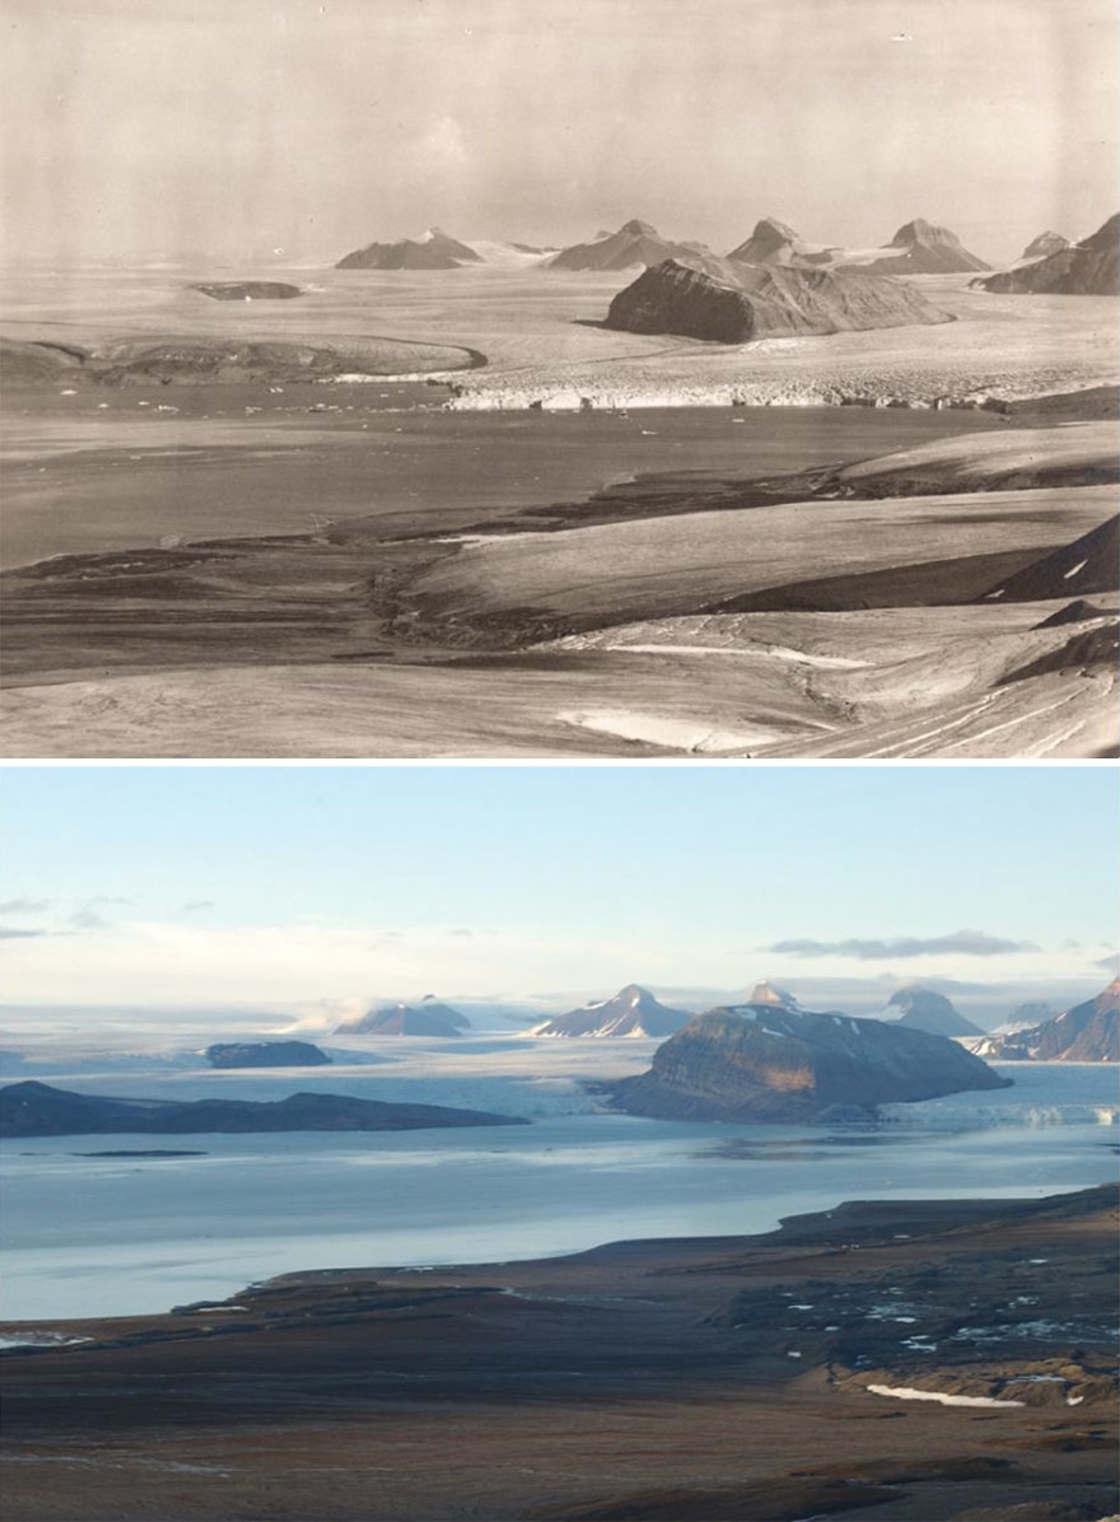 Visualizing the alarming decline of glaciers